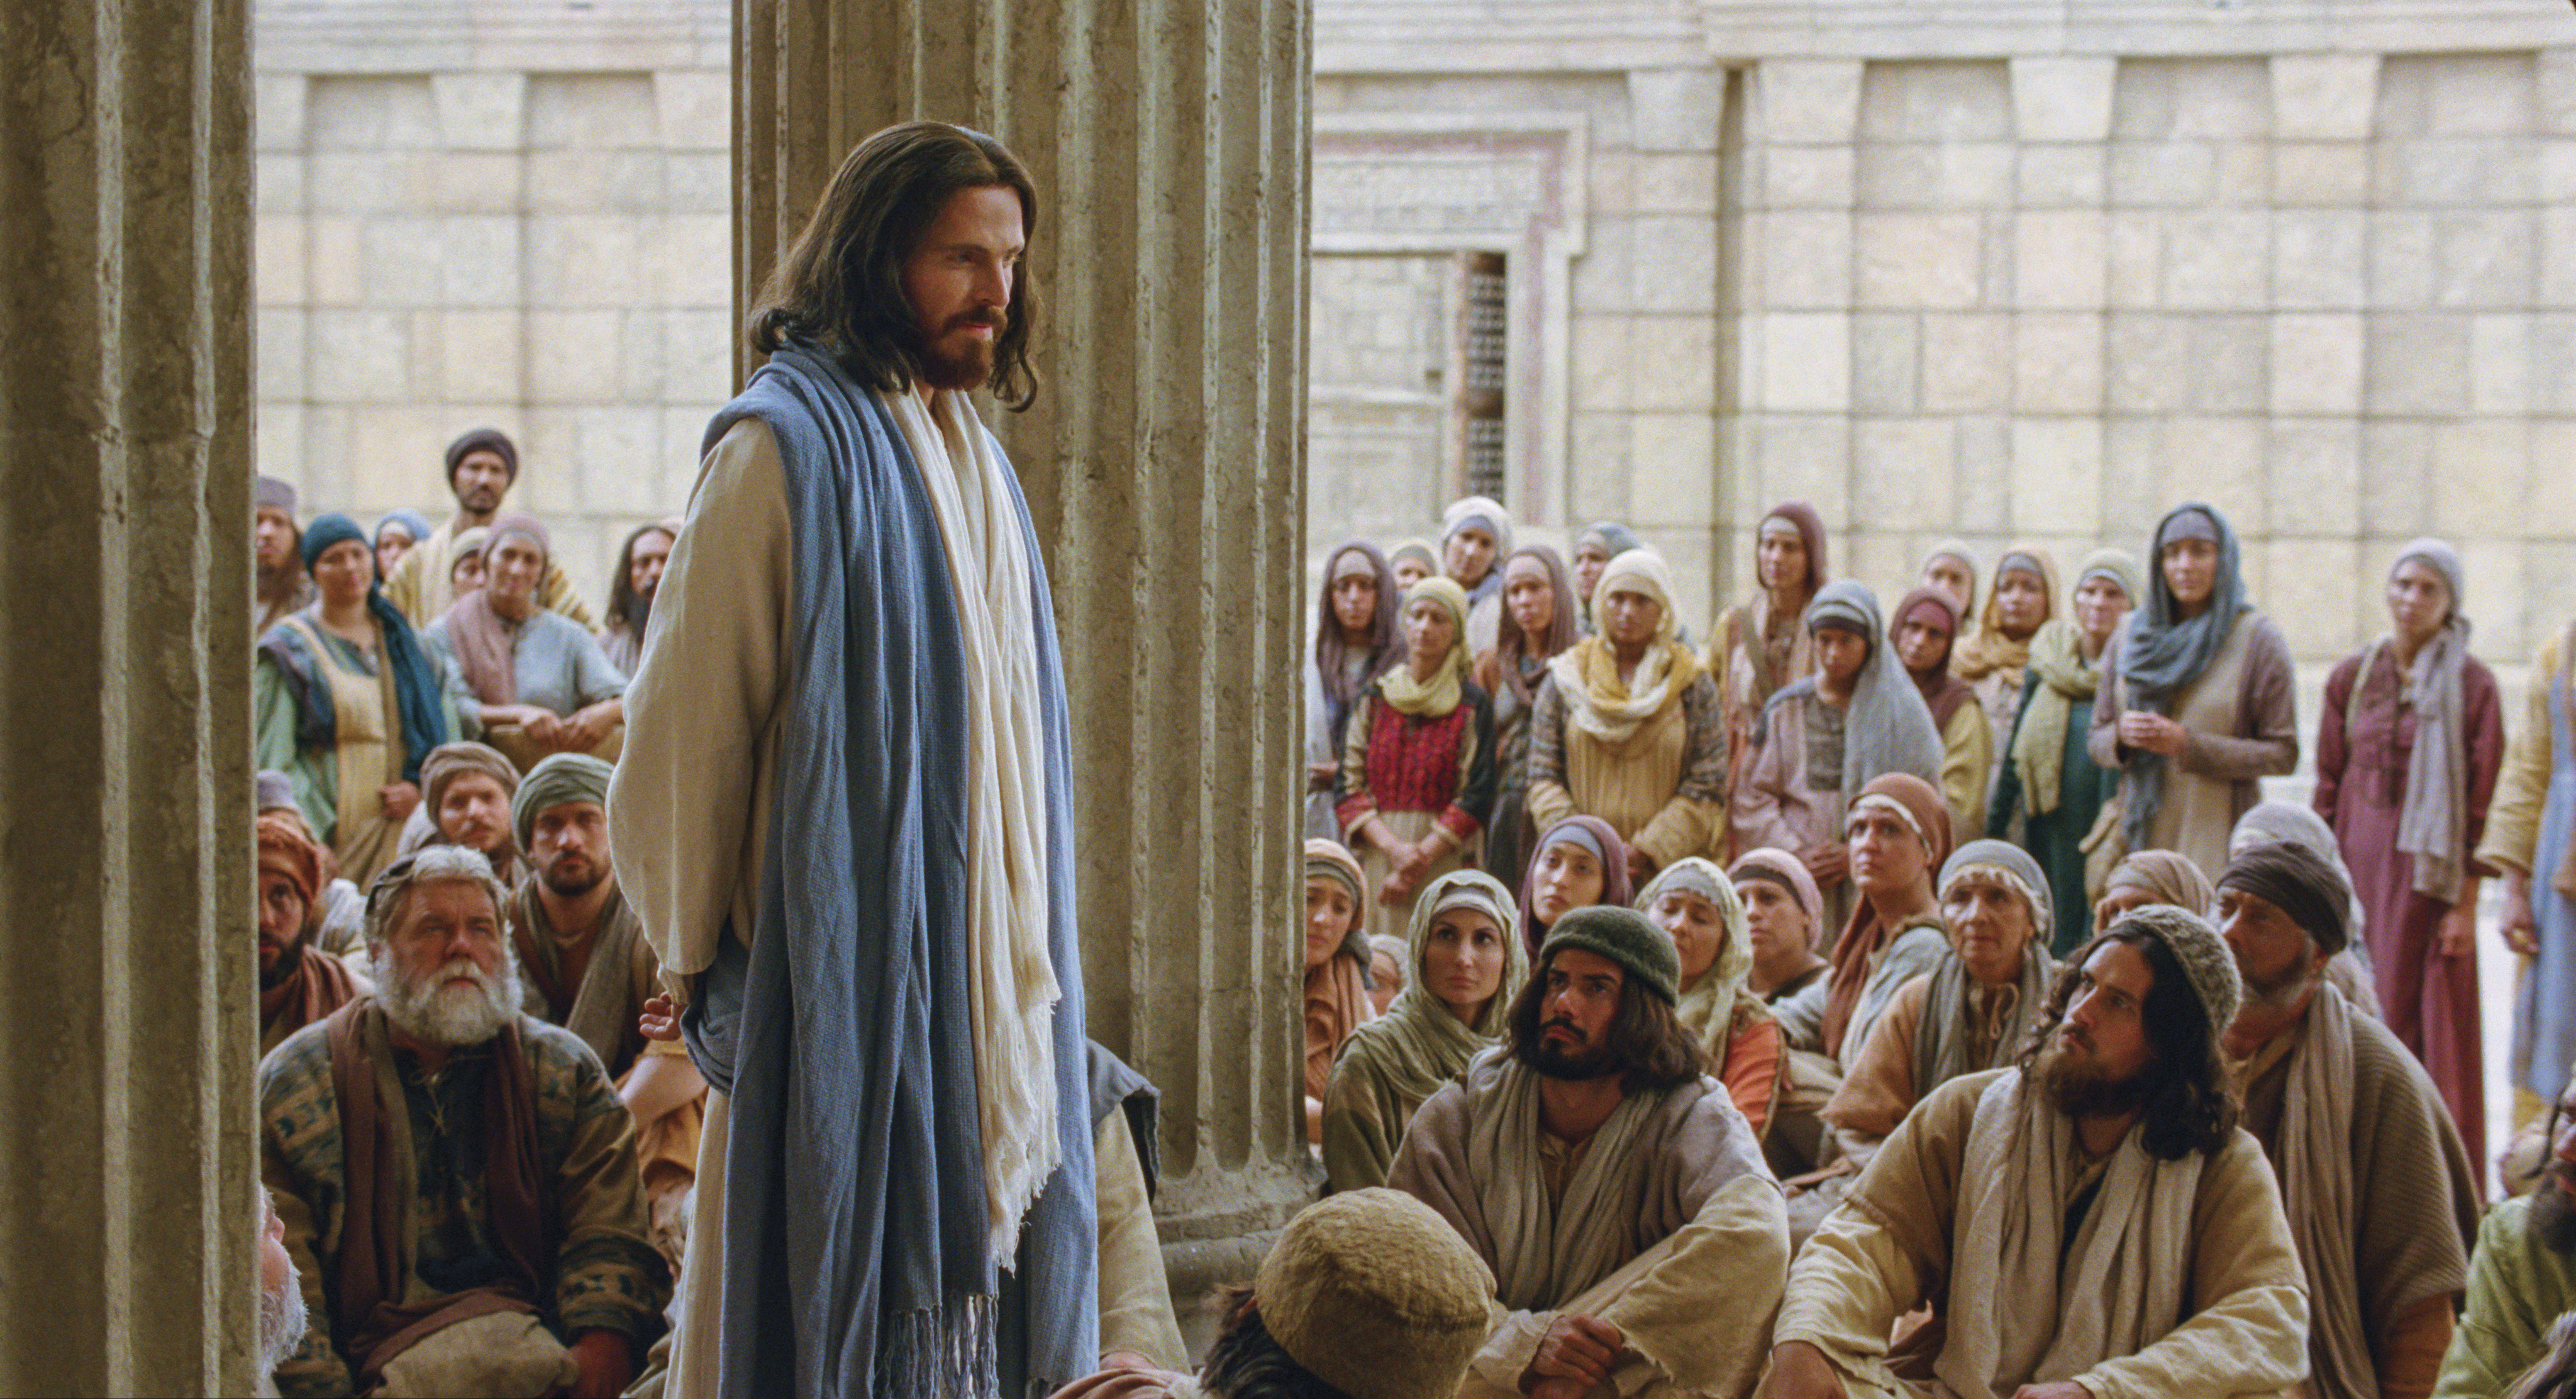 Christ teaches in the temple.